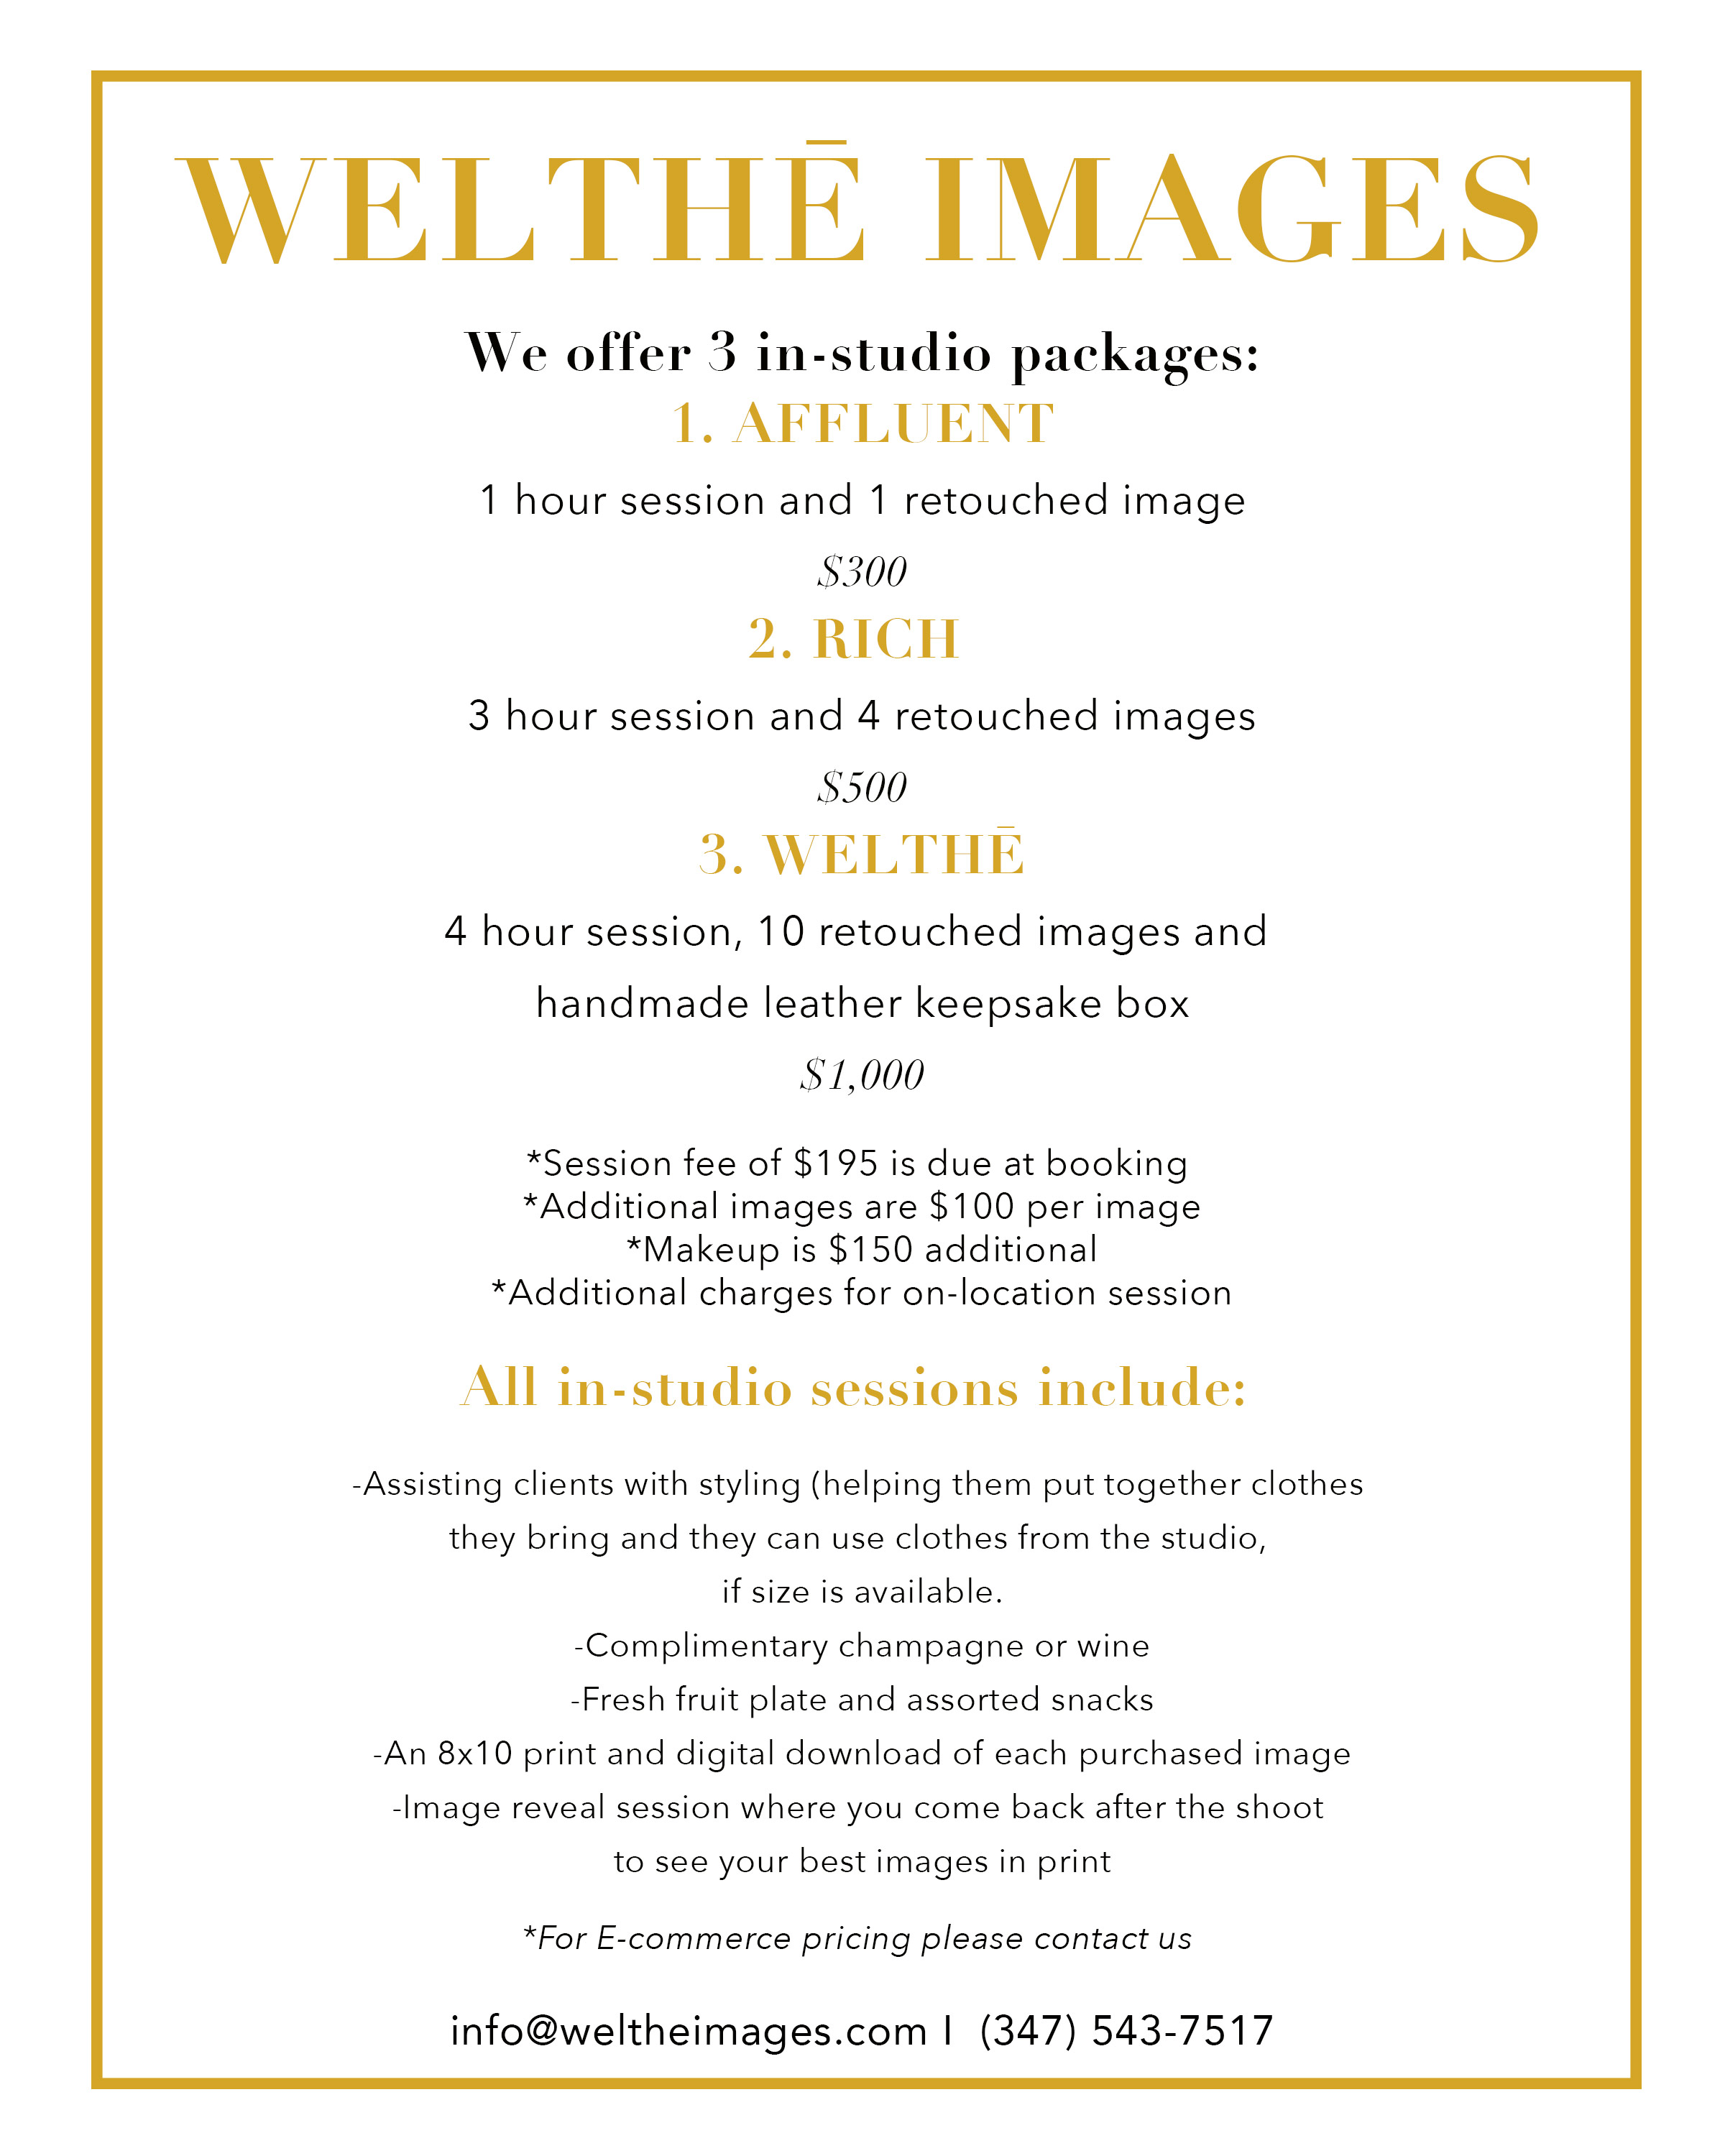 WELTHE-IMAGES---Price-List.jpg